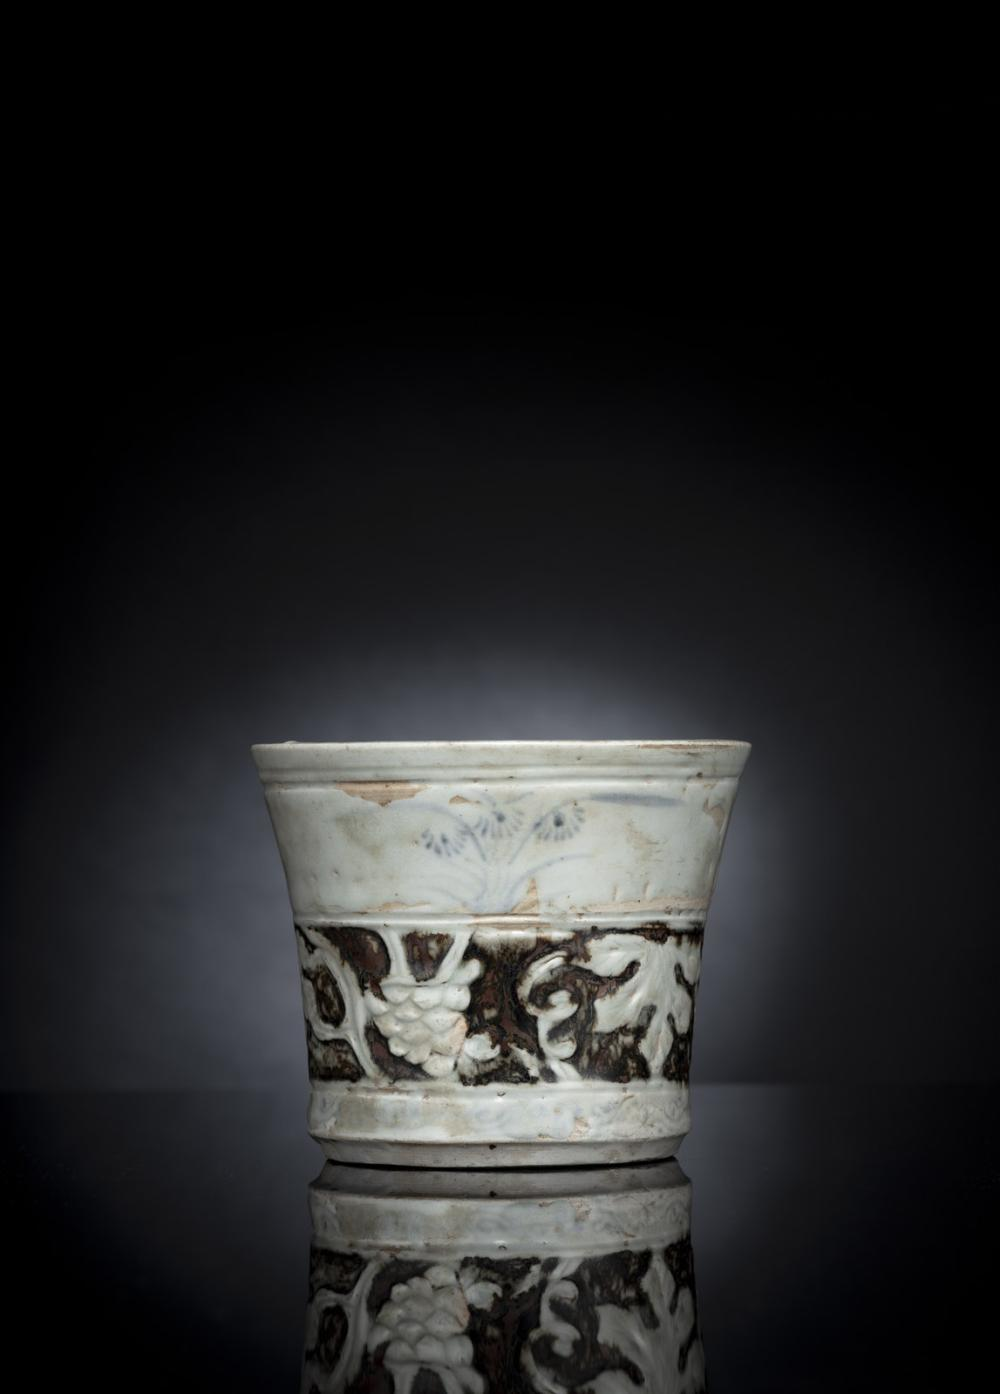 A FINE AND RARE PORCELAIN BRUSHPOT WITH MOLDED GRAPEWINE AND LEAF DECORATION AND DETAILS IN IRON-BROWN AND UNDERLAZE BLUE